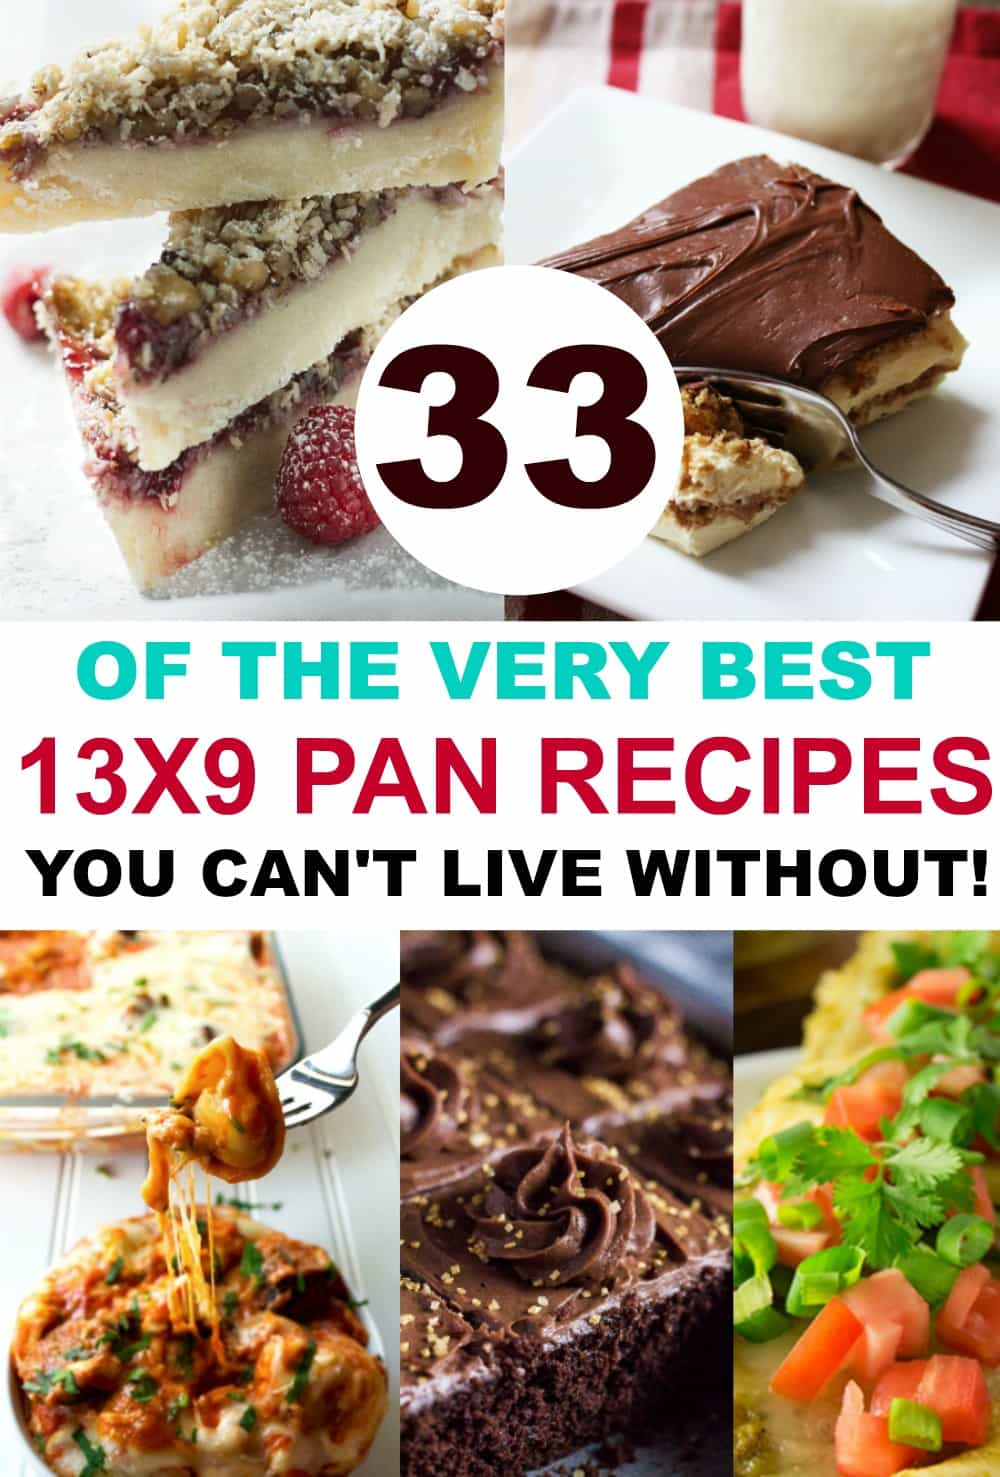 13 X 9 Baking | 33 Recipes You Can't Live Without!